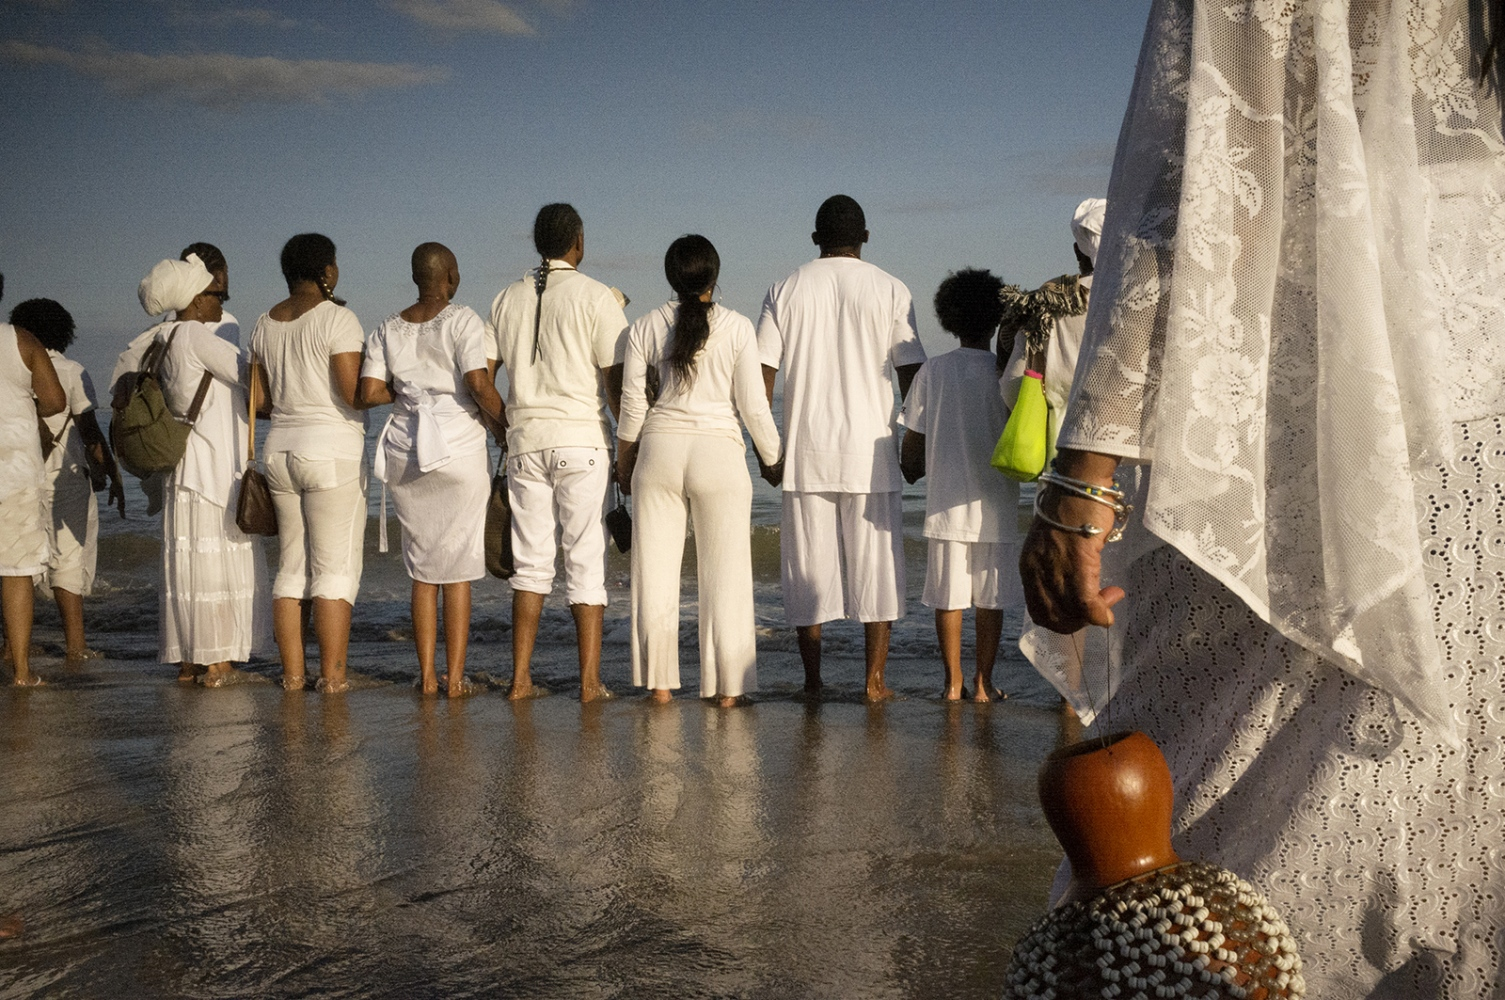 The Tribute begins on the boardwalk with speeches and African drumming. As sunset approaches, the crowd moves to the beach where they drum, dance, contemplate and pray. Participants are encouraged to dress all in white.   It took the slave ships between three weeks and three months to cross the Atlantic, depending on the winds. Estimates vary, but the consensus low range is that 10 to 15 million Africans made that crossing and that between 10 and 30 percent of them died in transit. That's two to five million people, perhaps many more, all of whom died horrible deaths from a brutal variety of causes. When you consider the numbers who died while being hunted or transported to the ships, the Middle Passage was a Holocaust that rivals, or even surpasses, the Holocaust perpetrated by the Nazi Germans and their allies in the early 20th century. #documentaryphotography #photojournalism #visura #burnmagazine #fujifilm #fujifilm_xseries #brooklyn #nyc #newyorkcity #historicnyc #coneyisland #coneyislandbeach #panafrican #panafricanism #blacklivesmatter #remembrance #melancholy #visualsoflife #beauty #middlepassage #tributetotheancestors